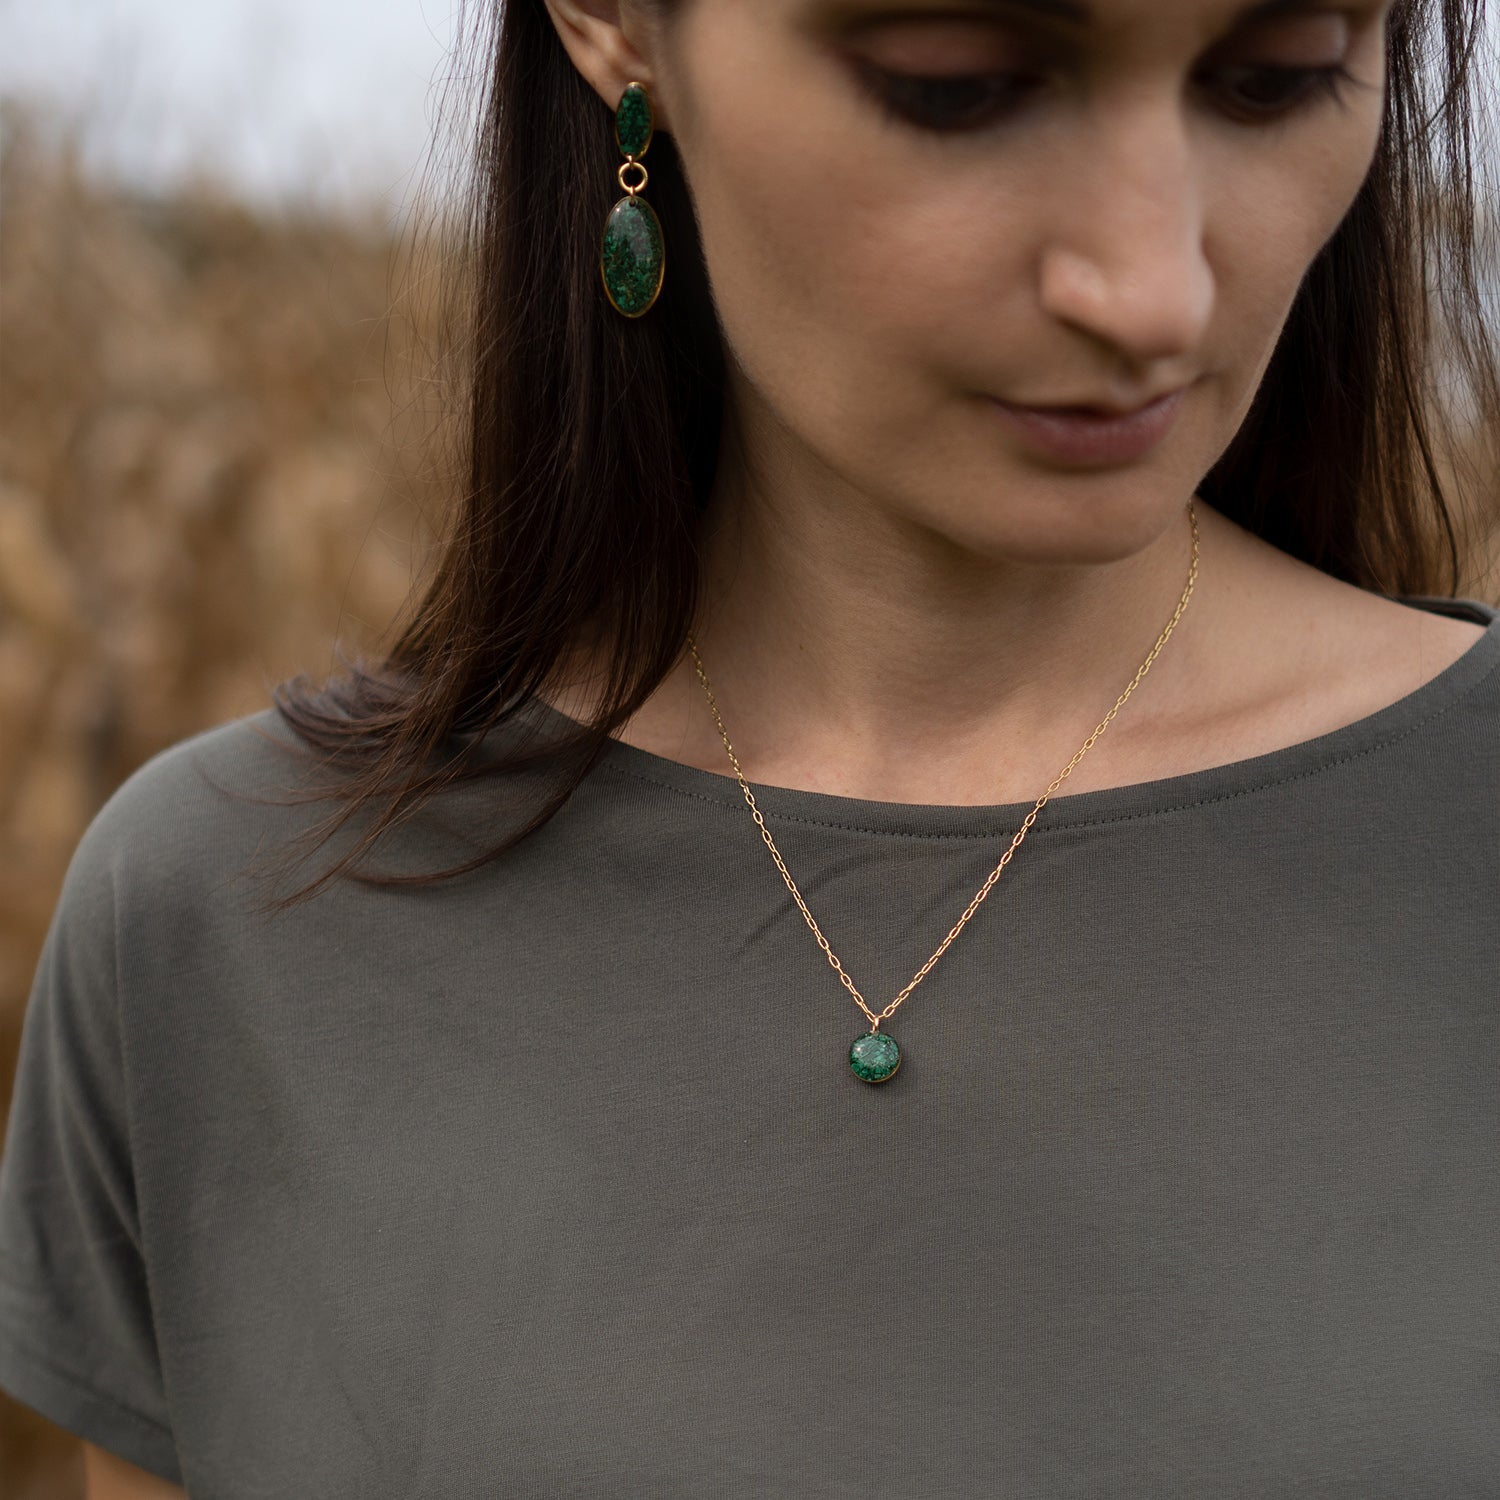 Dainty Malachite Necklace